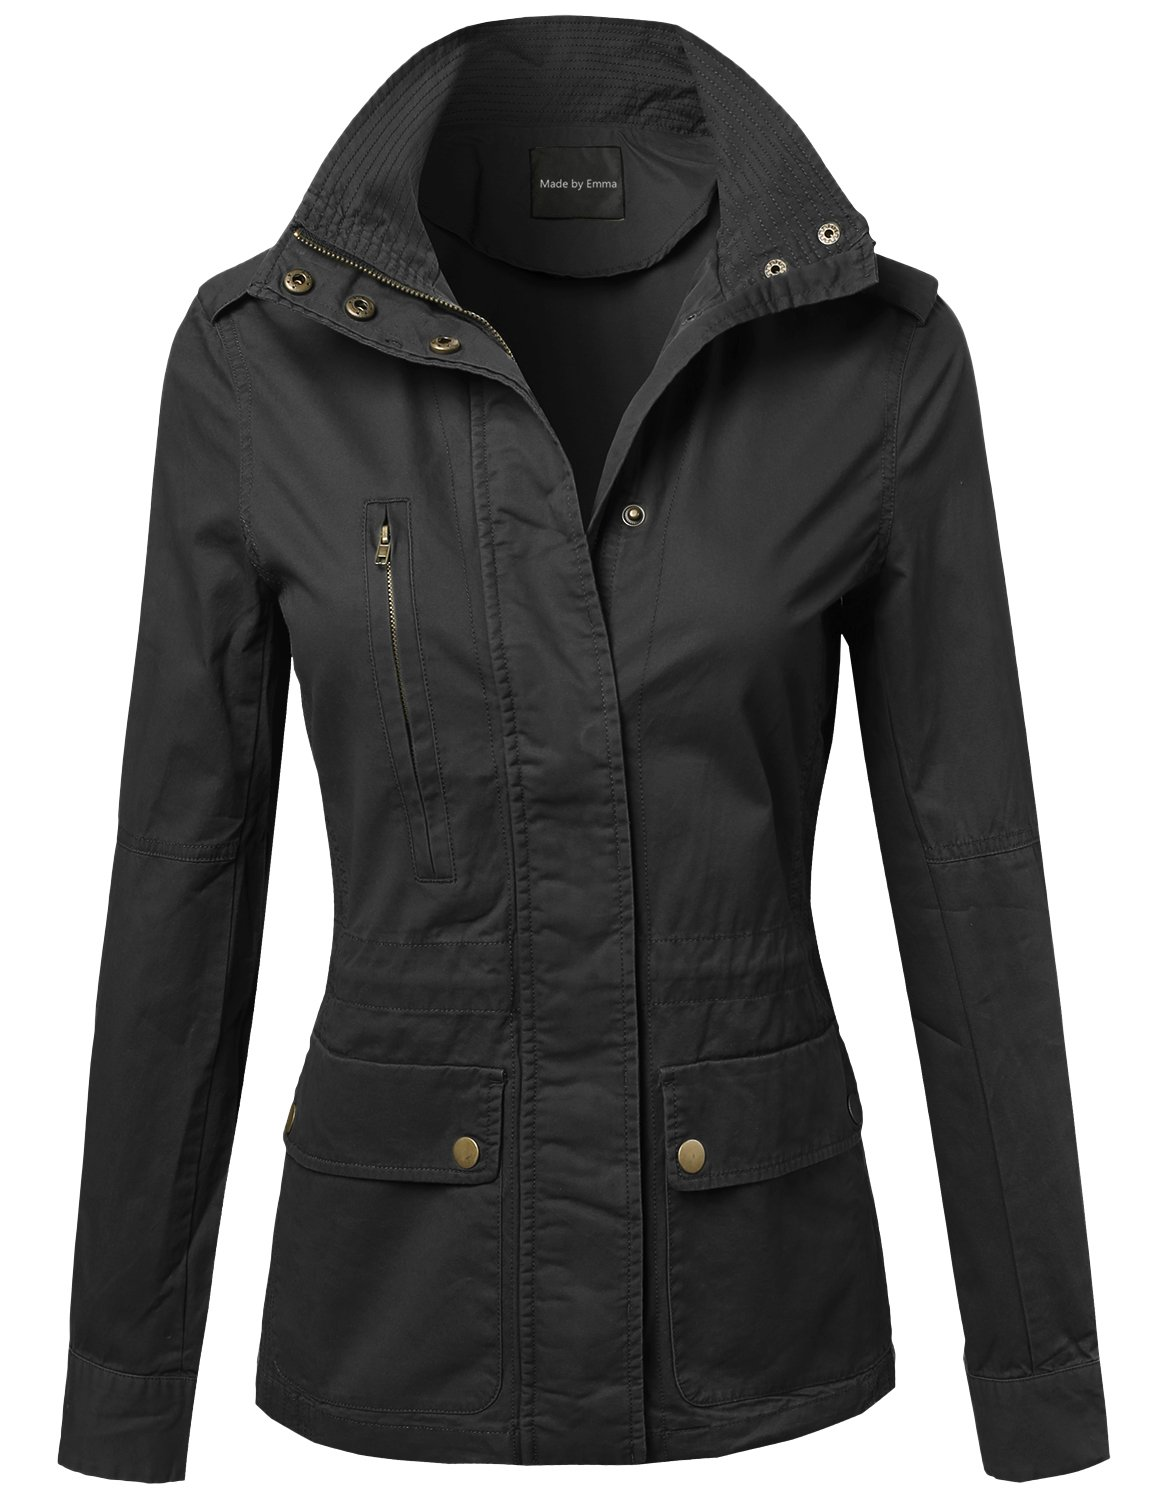 Made by Emma Military Style Zipper Snap Button Closure Jacket Black L by Made by Emma (Image #1)